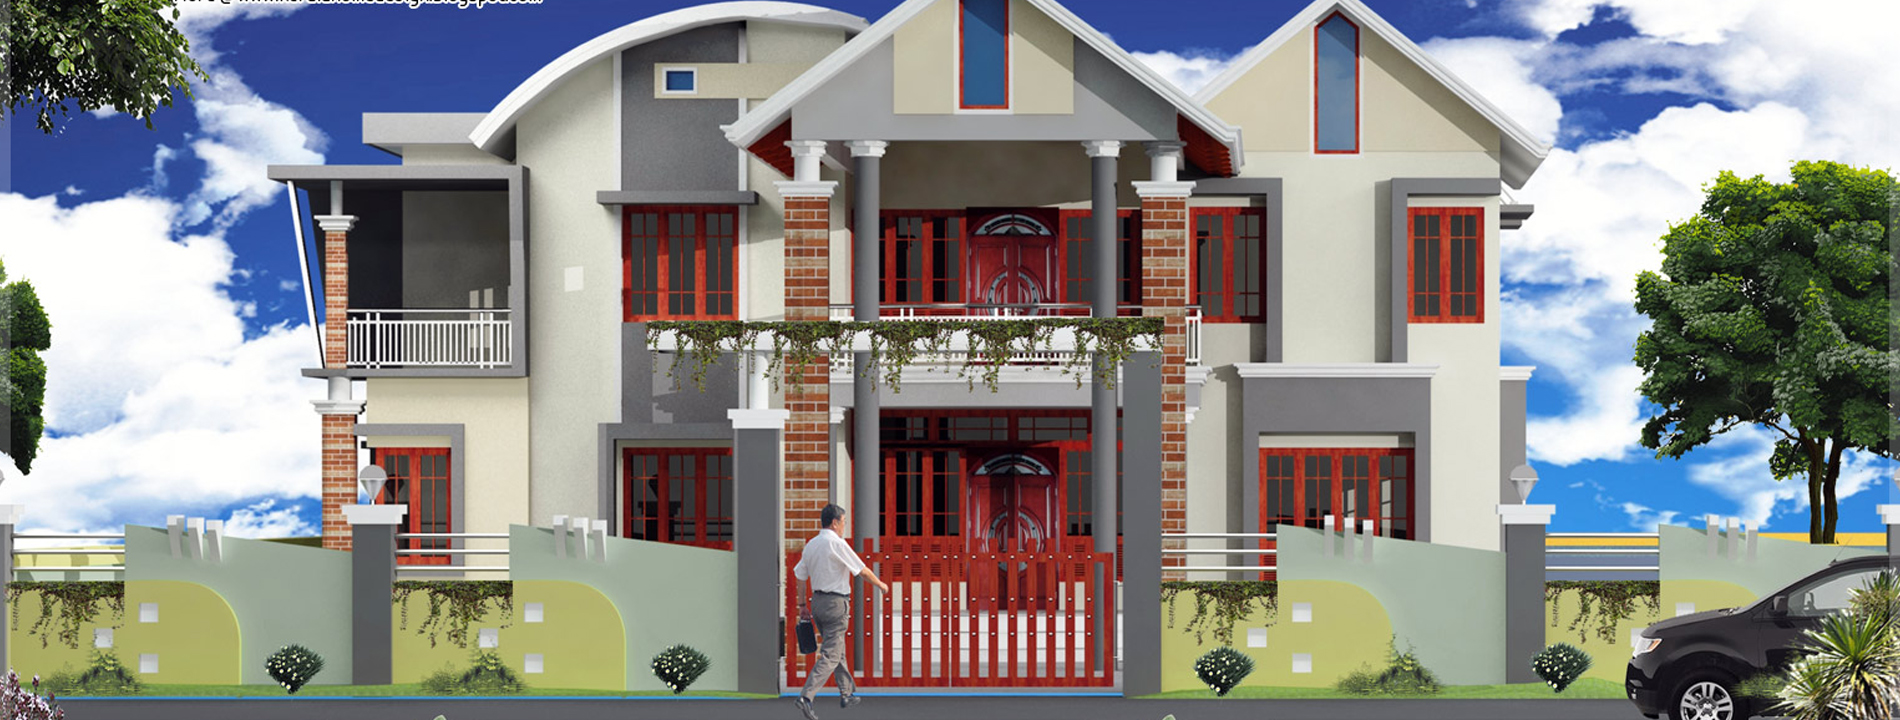 Squarelands best property consultancy in visakhapatnam